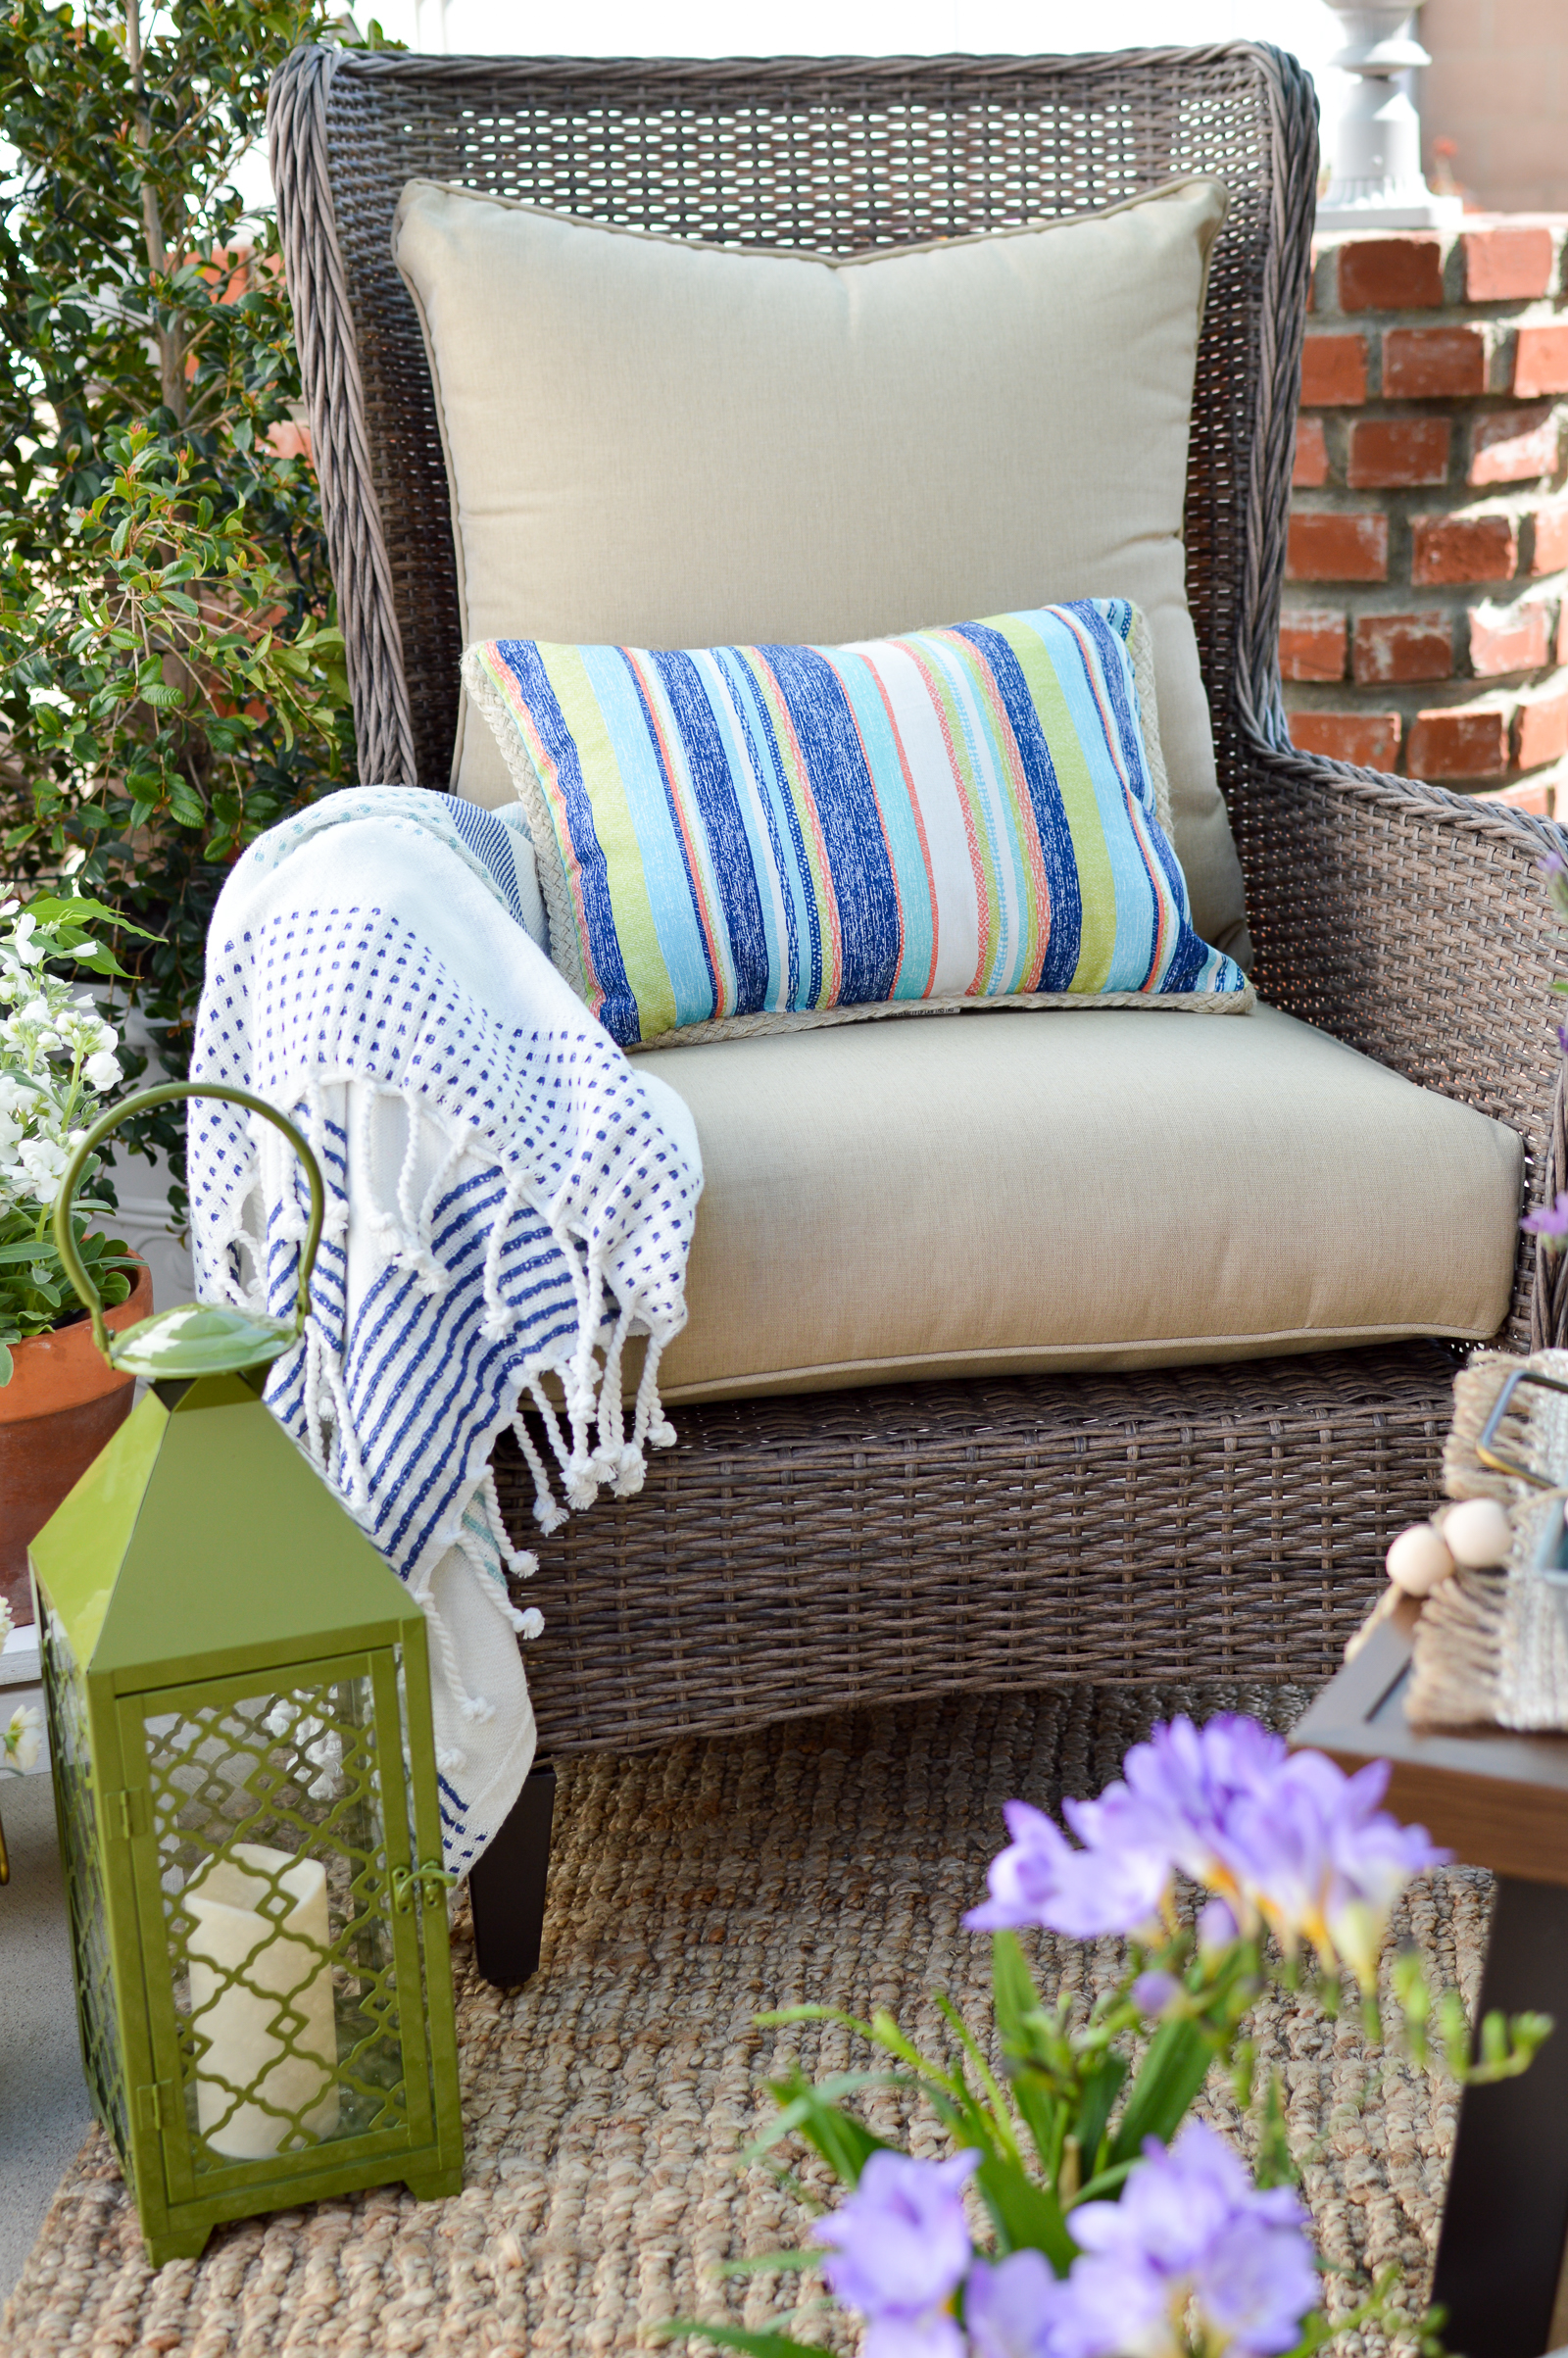 Small Space Patio Decorating Ideas with Really Comfortable Outdoor Furniture www.foxhollowcottage.com #sponsored with Better Homes & Gardens. Find it at Walmart